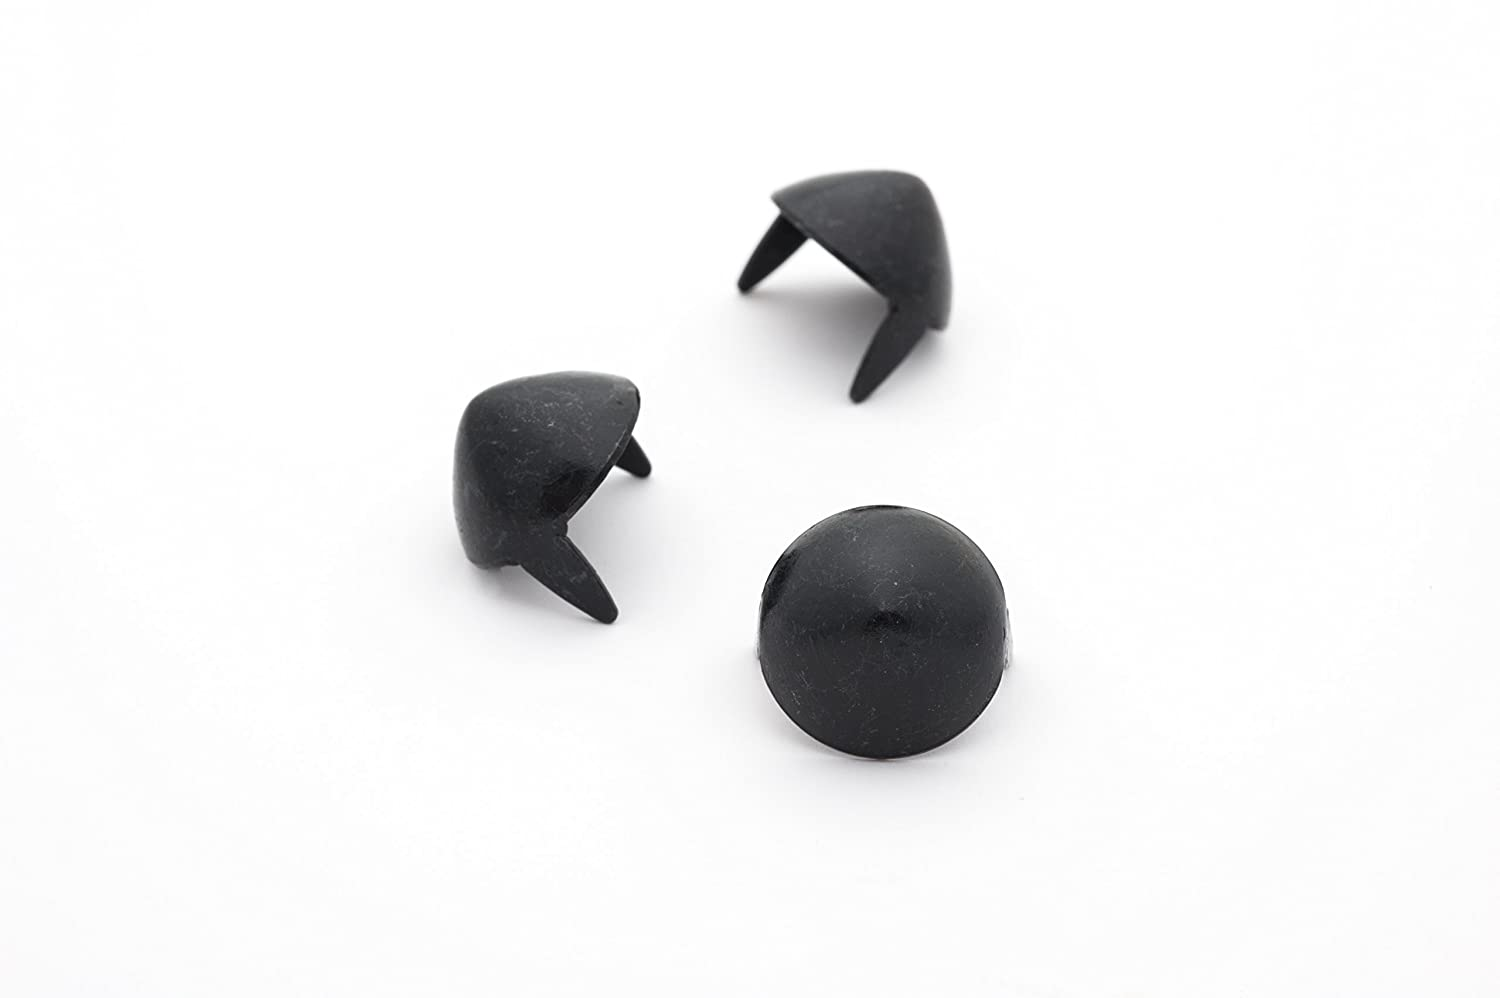 Cone Studs - Size 13 - Ideally used for Denim and Leather Work - Classic Two-Prong Studs - Black - Pack of 100 studs and spikes StudsAndSpikes